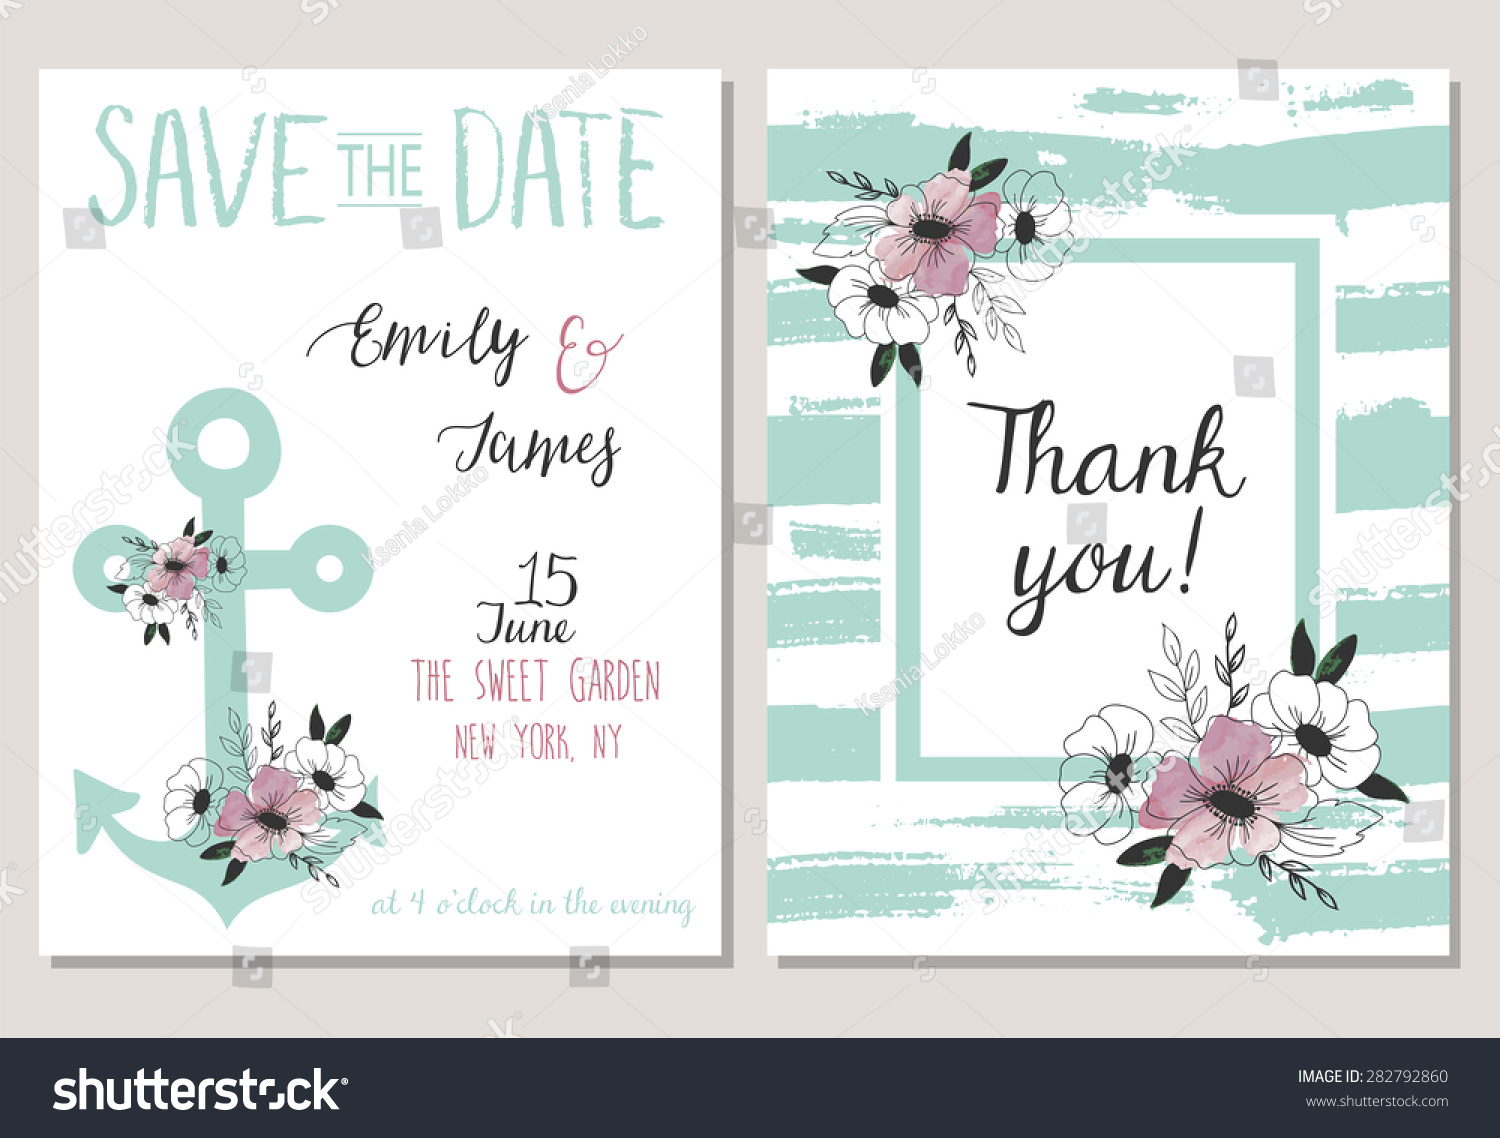 2 Save Date Cards Template Collection Stock Vector Royalty Free